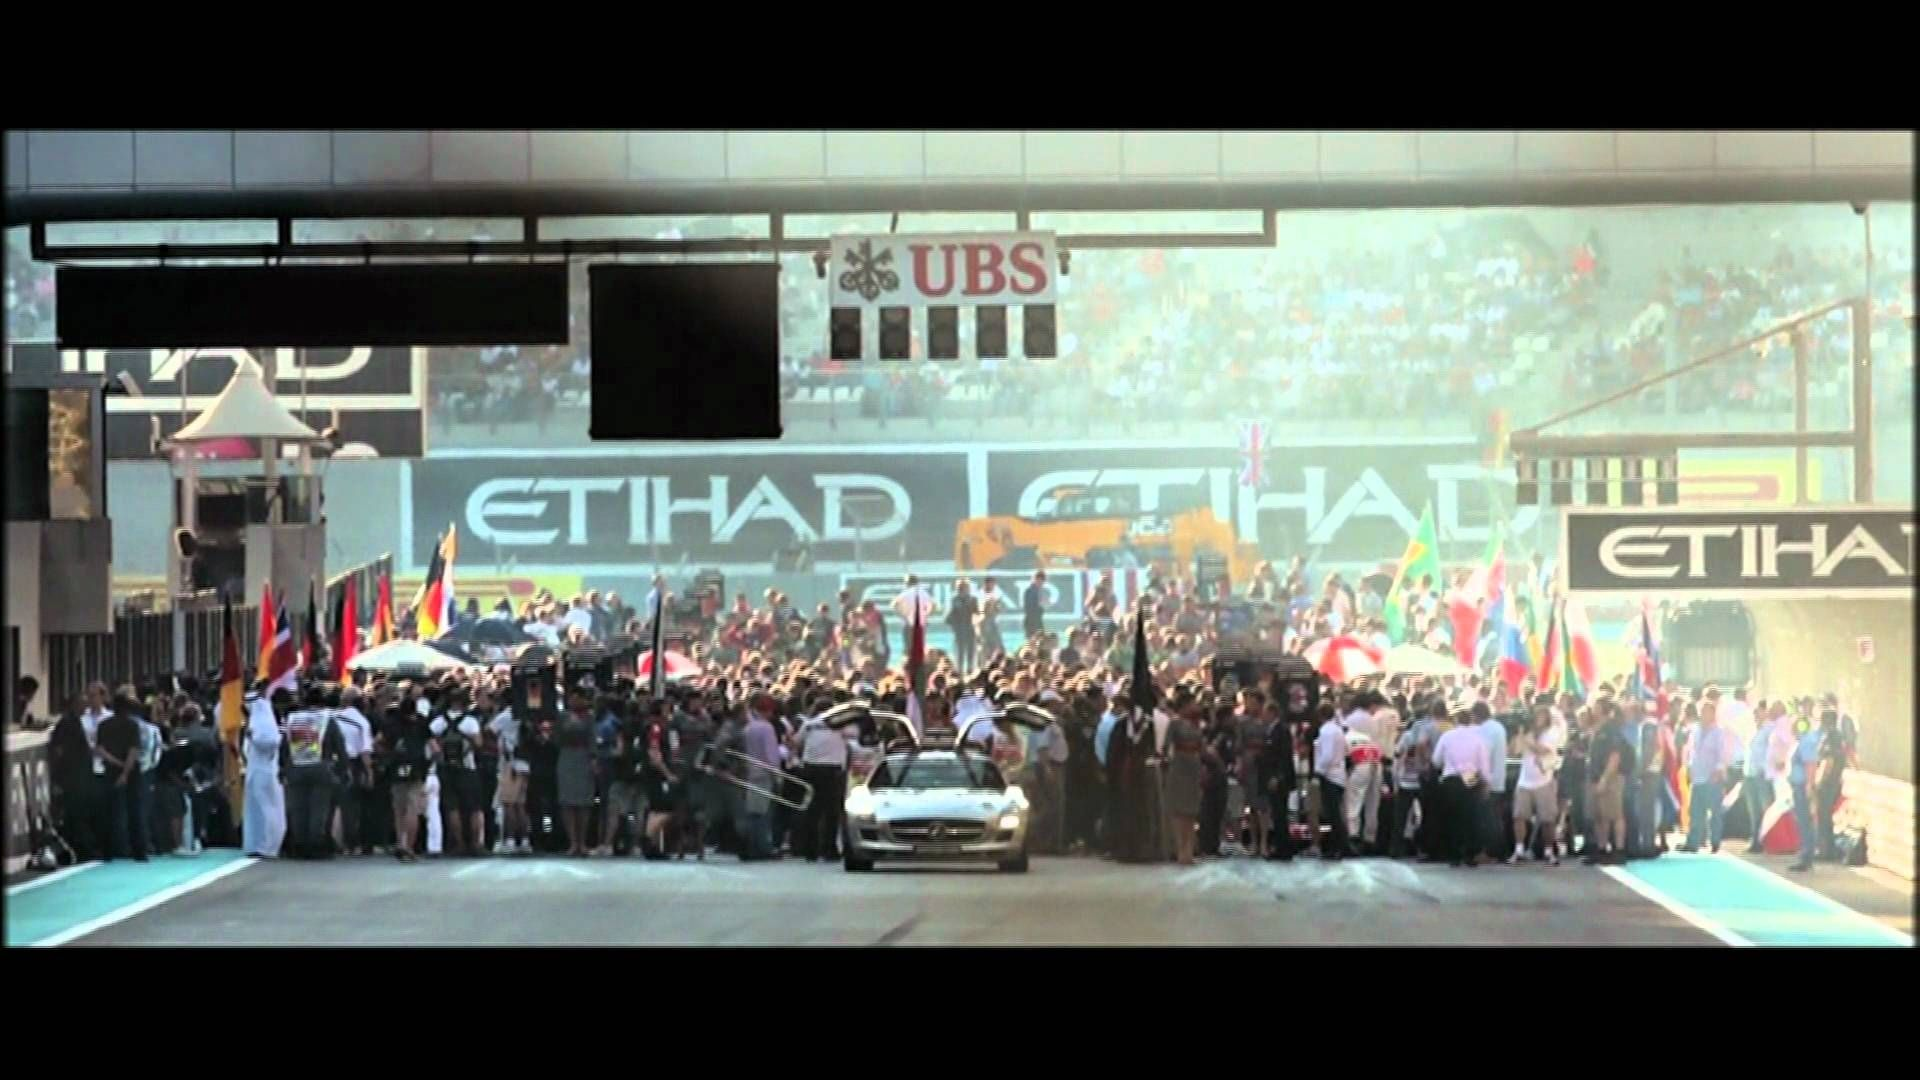 Tvc Brand Sport Action Skysports F1 Formula 1 Hd Advert Commercial Tvc Brand This Commercial Gives You An Idea Of The Ob Sport F1 Real Racing Sky New